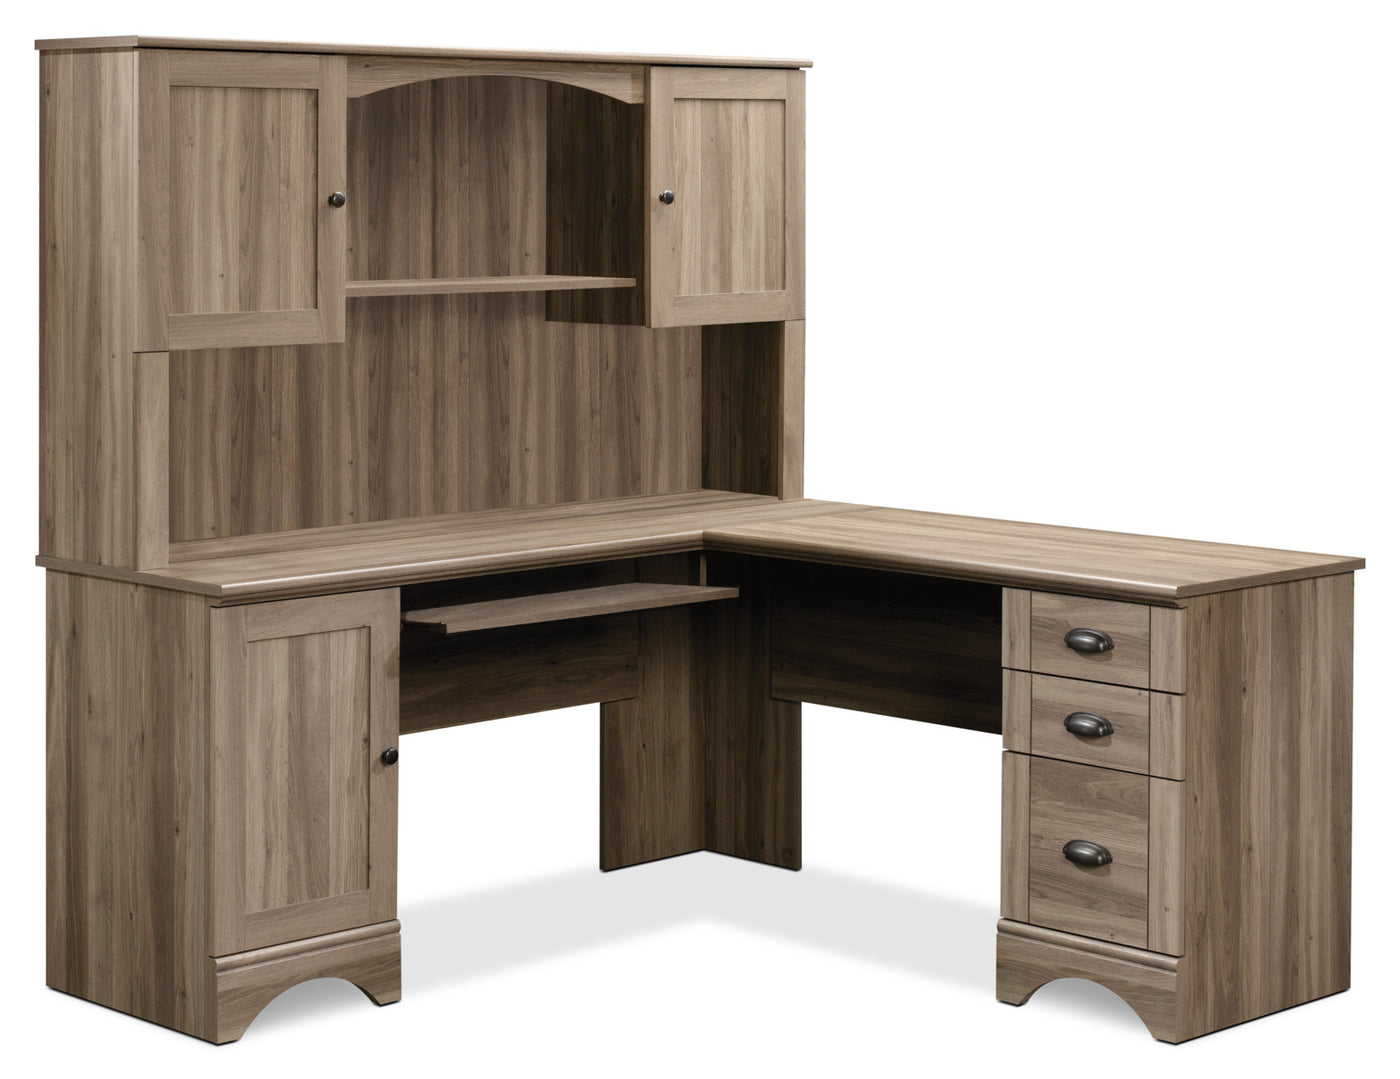 Image of: Harbor View Corner Desk With Hutch Salt Oak The Brick